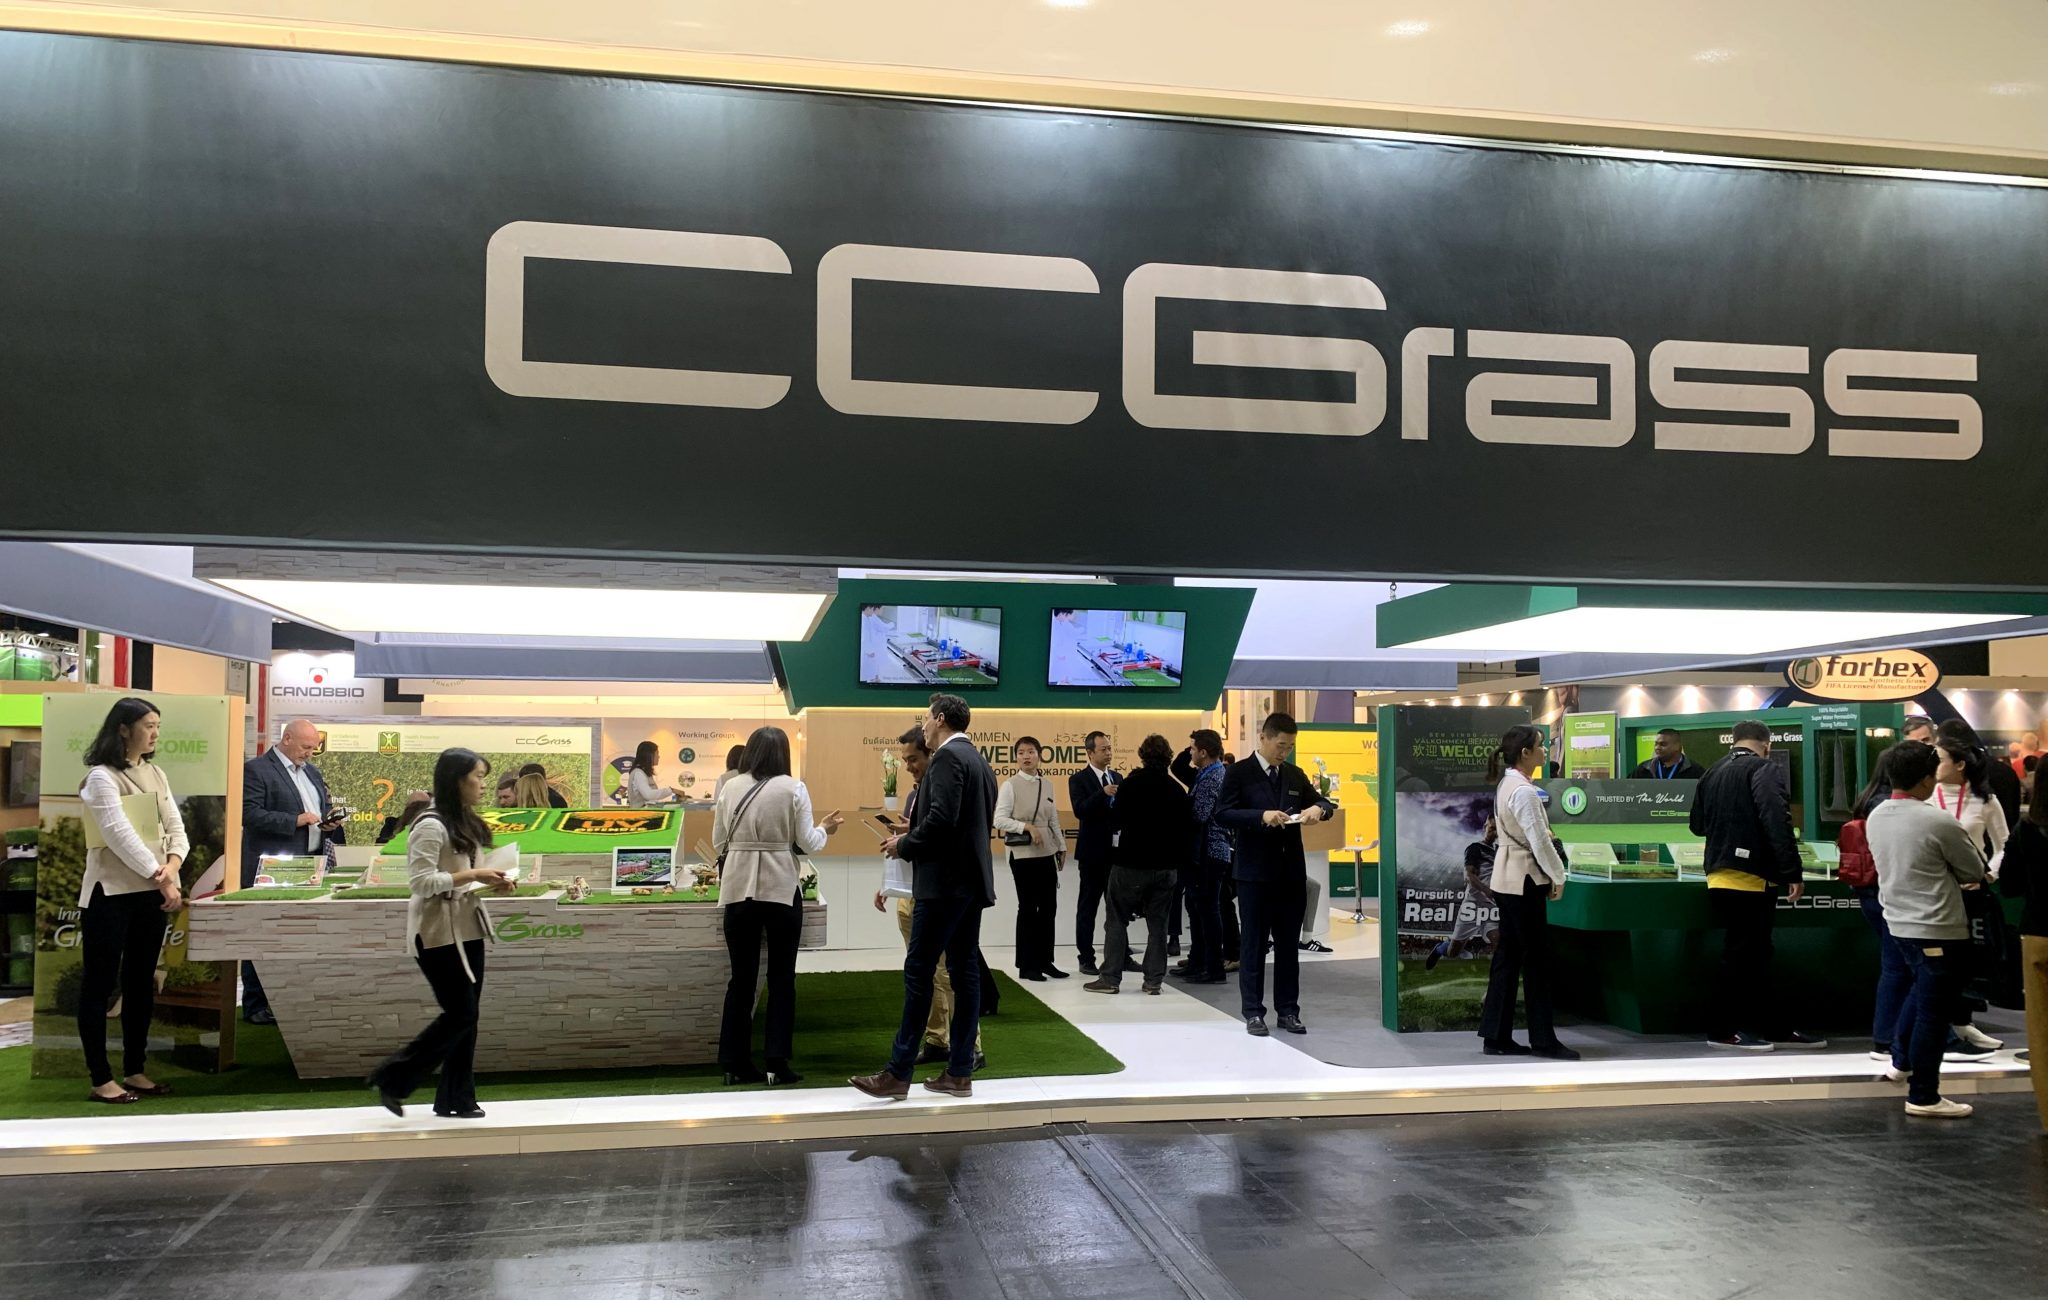 Great success for CCGrass at this year's FSB exhibition in Cologne1